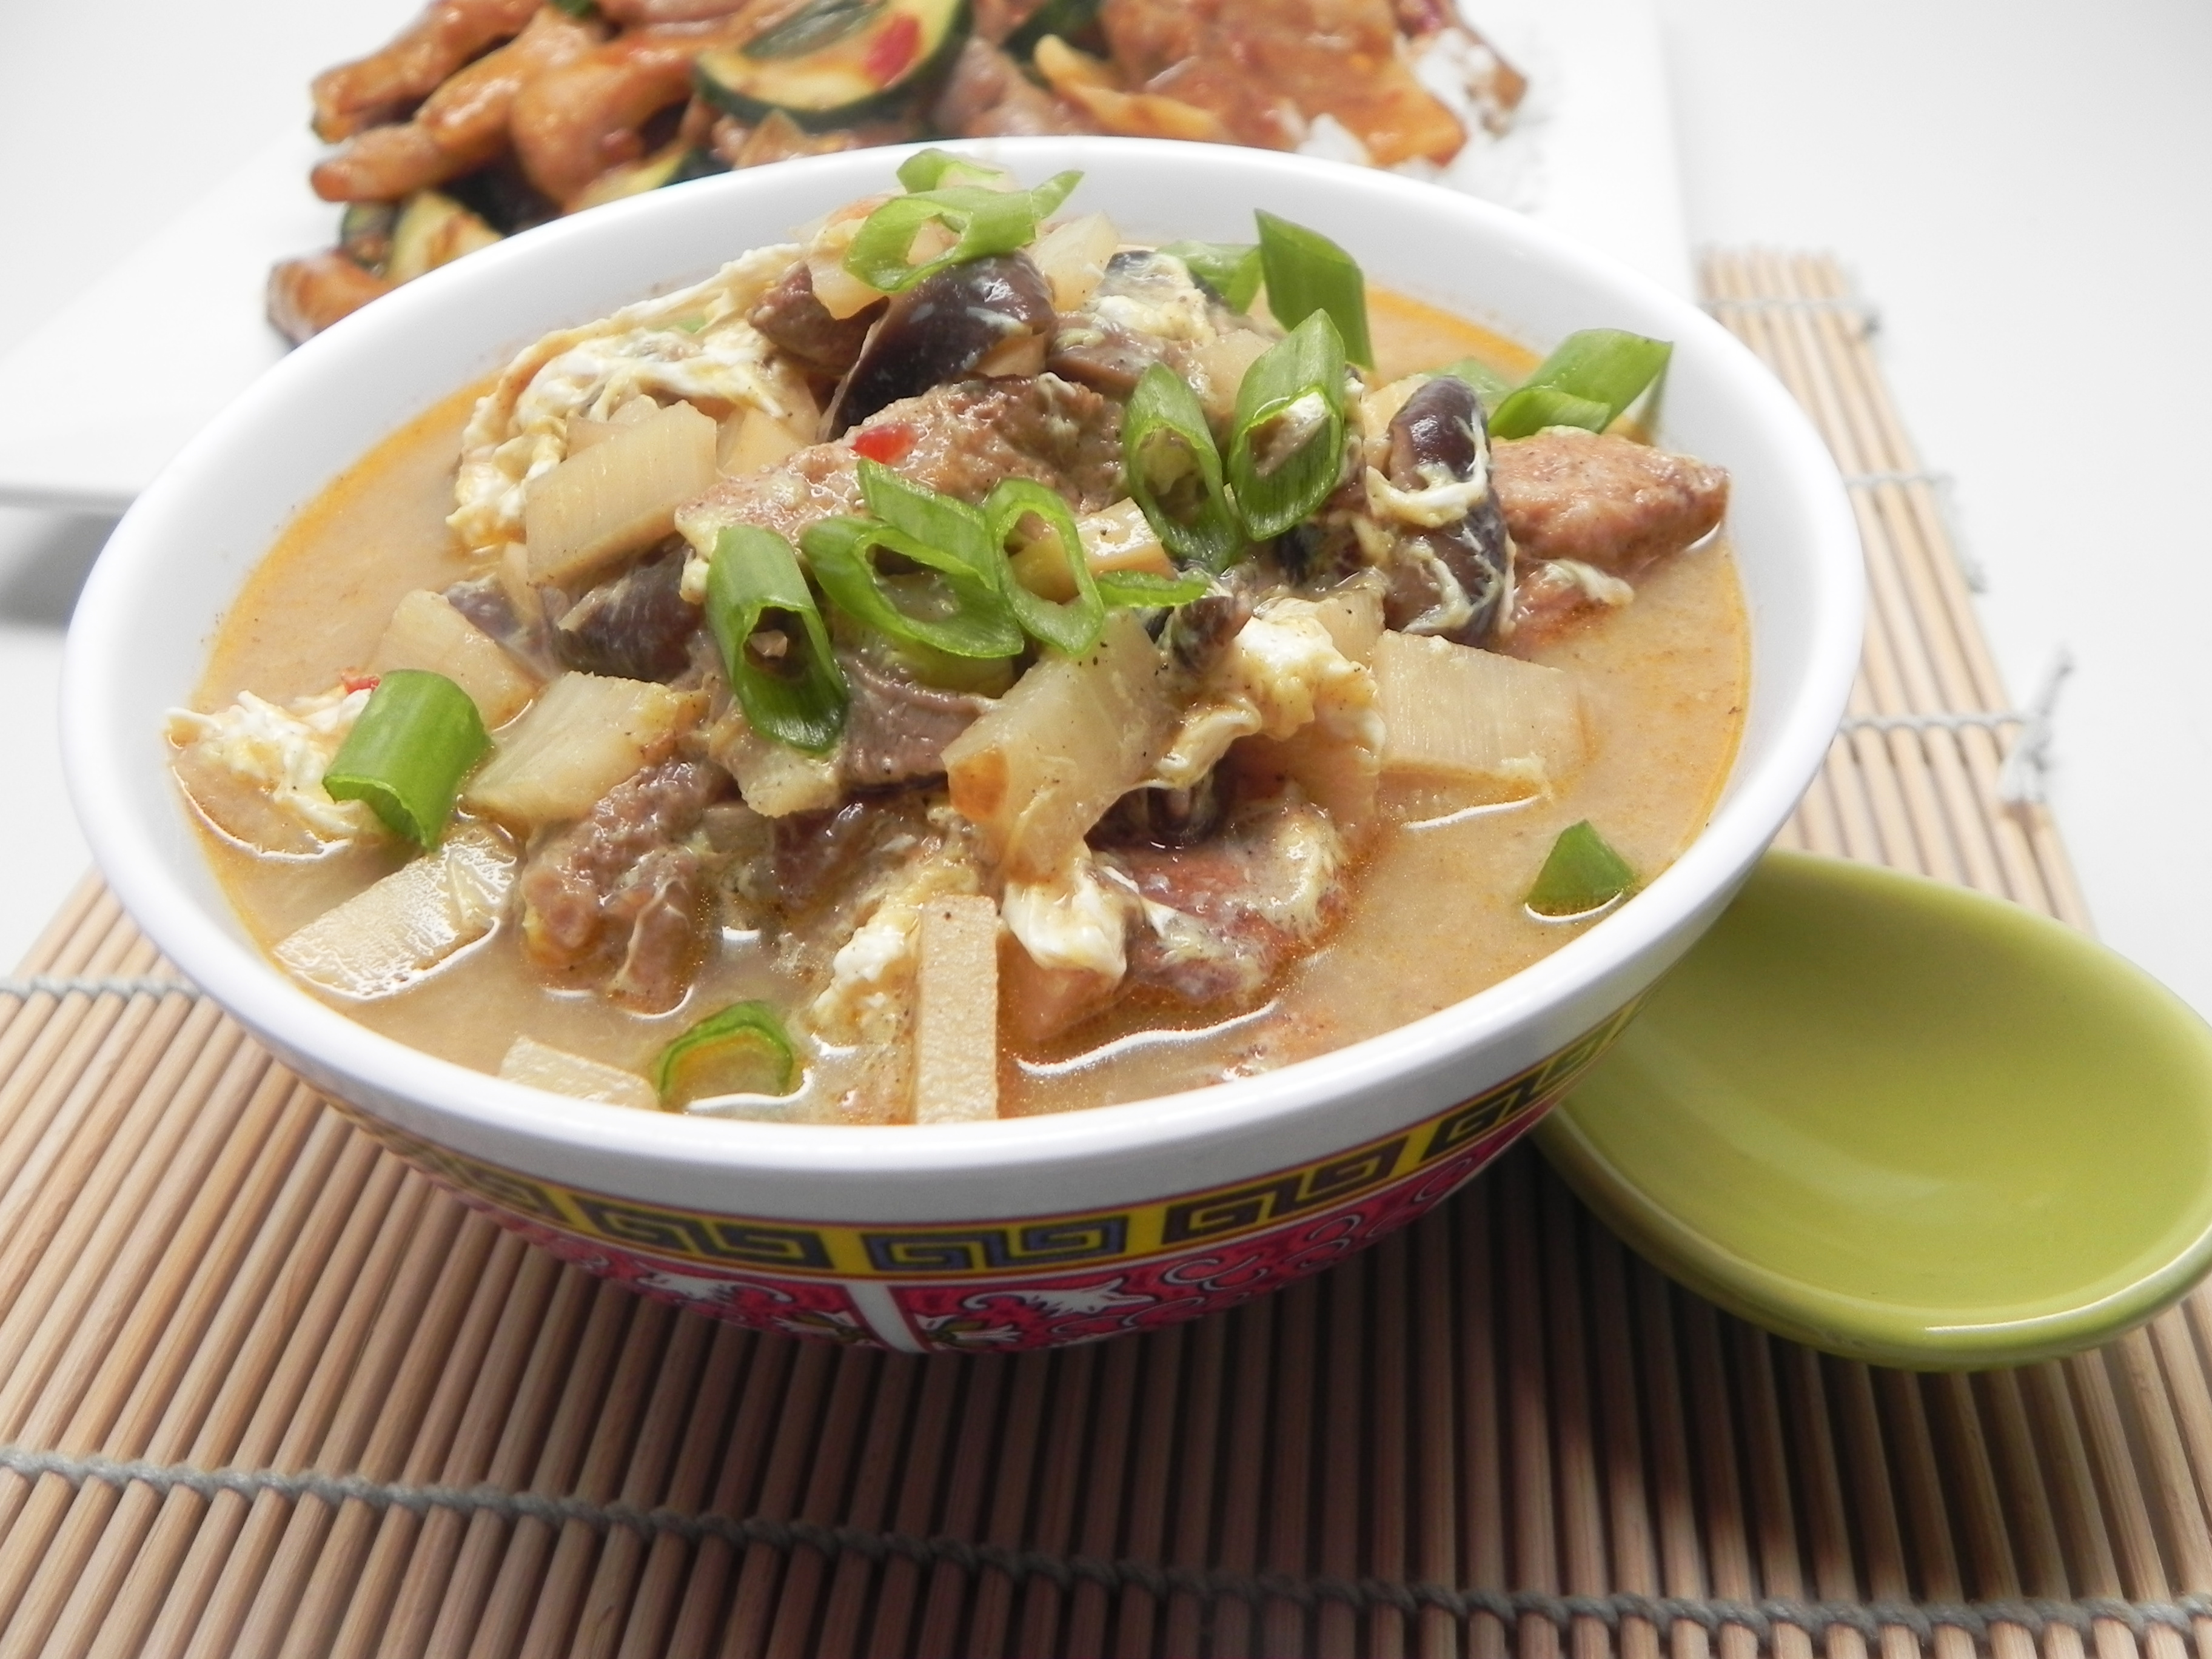 Pork and Bamboo Shoot Soup with Cloud Ear